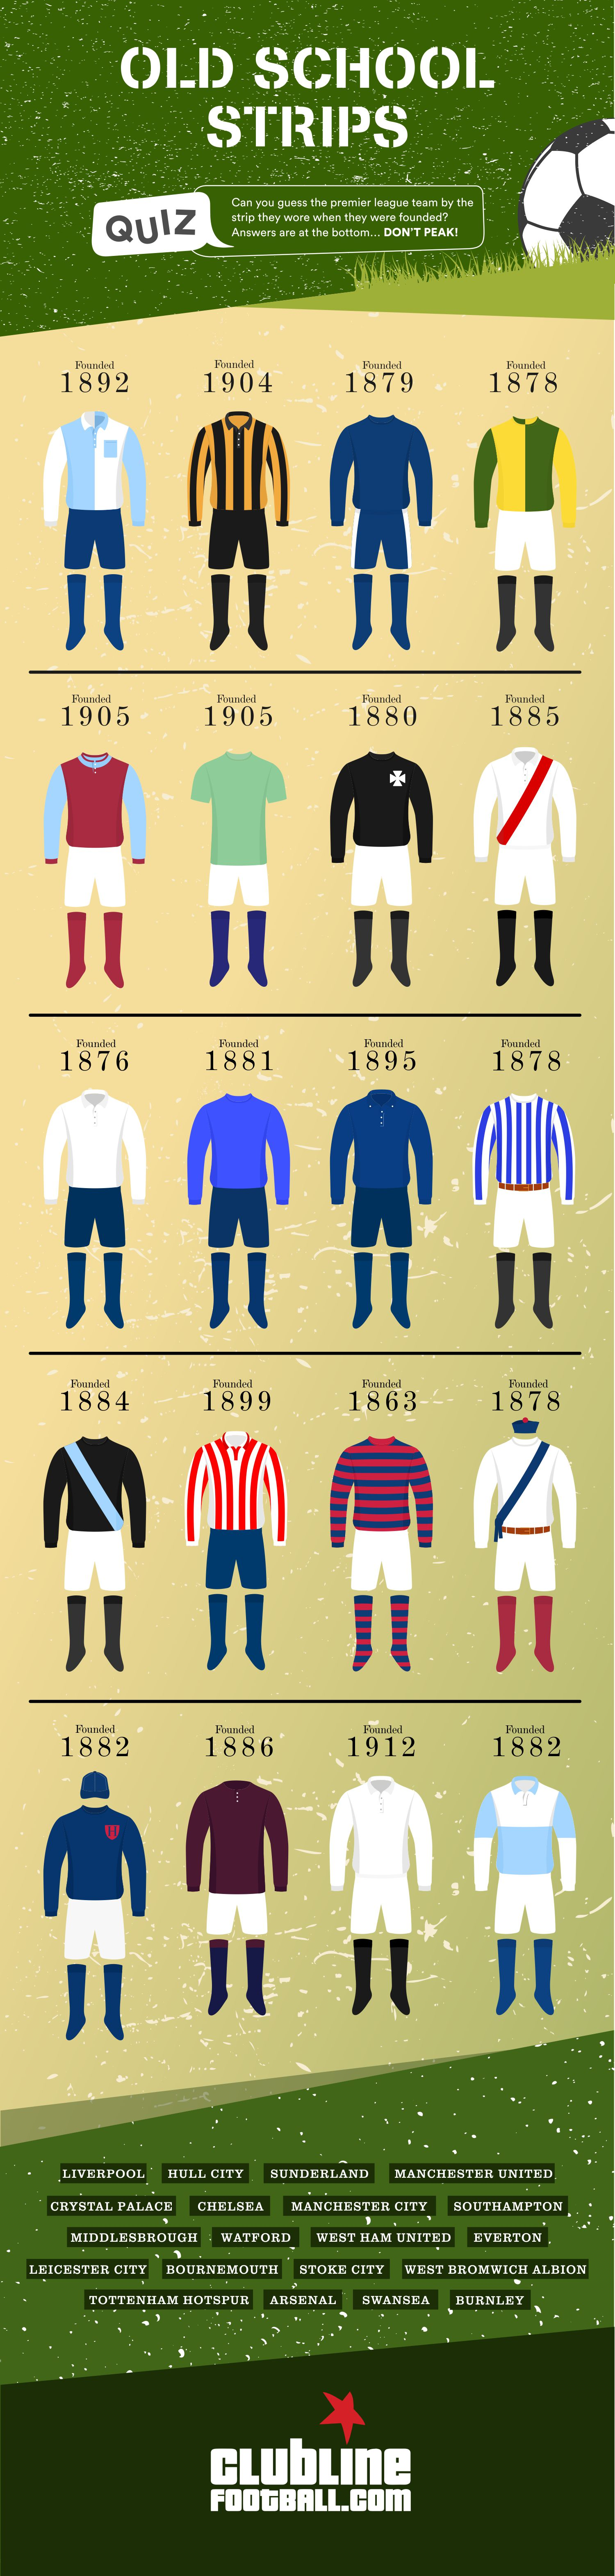 Old School Strips Infographic 1500px